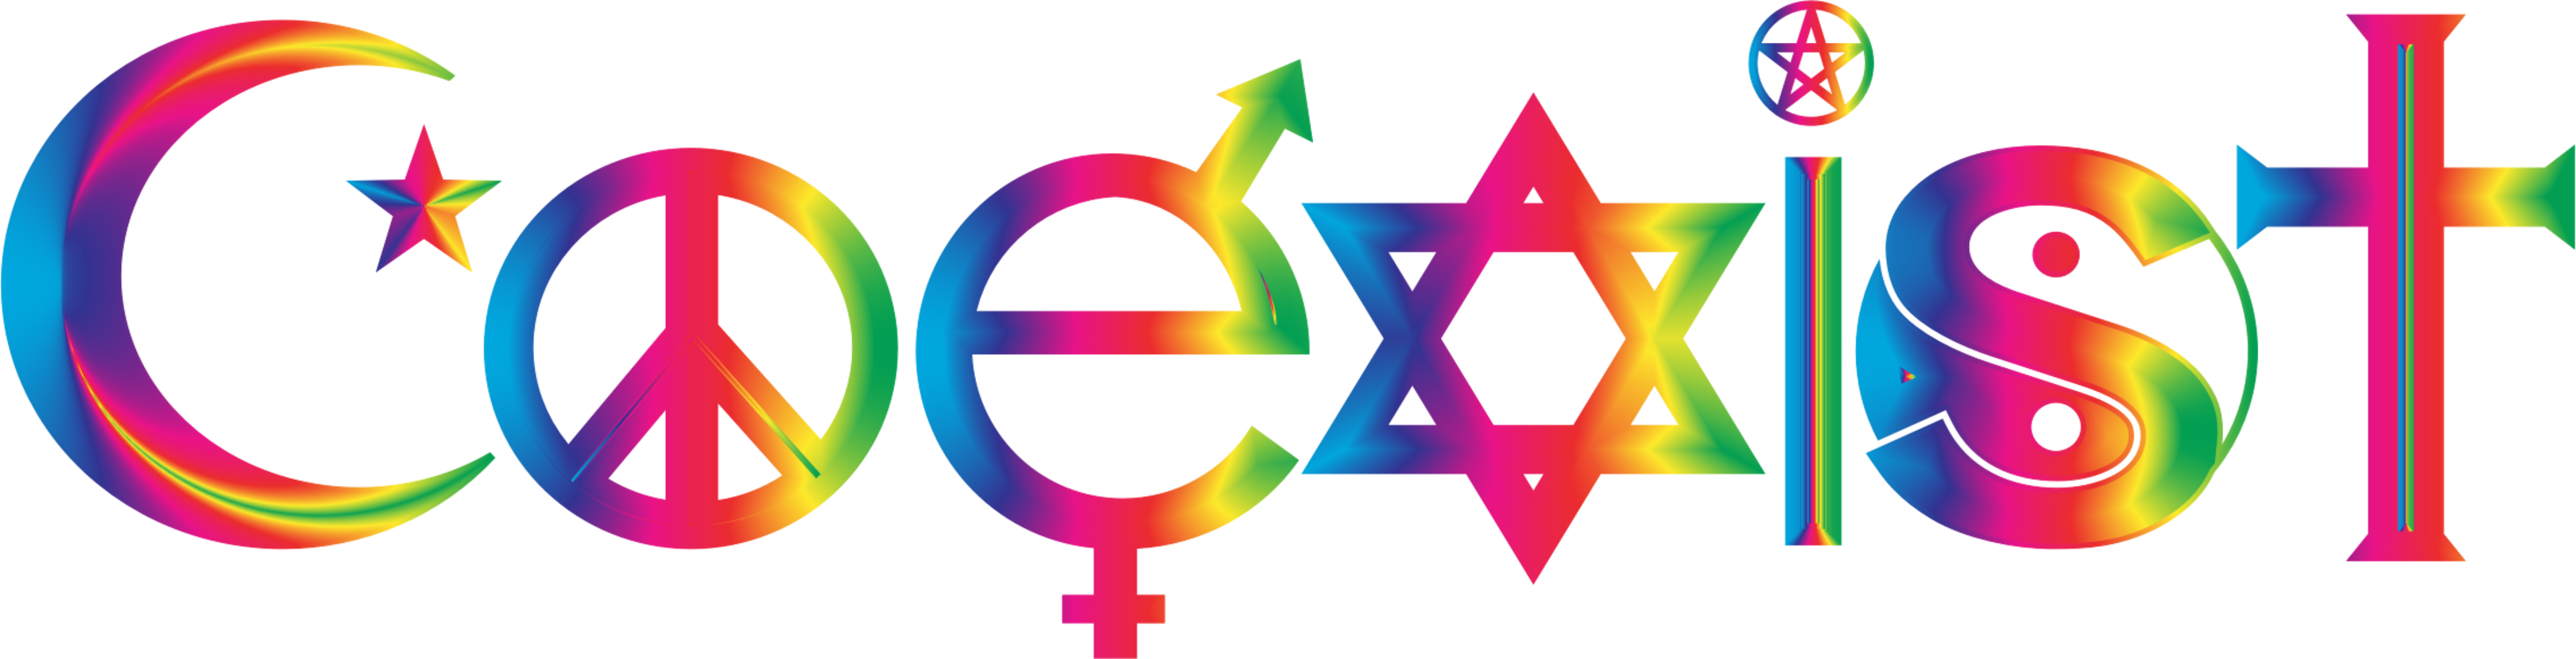 Coexist Symbol Religion Sticker Decal Free Commercial Clipart Logo